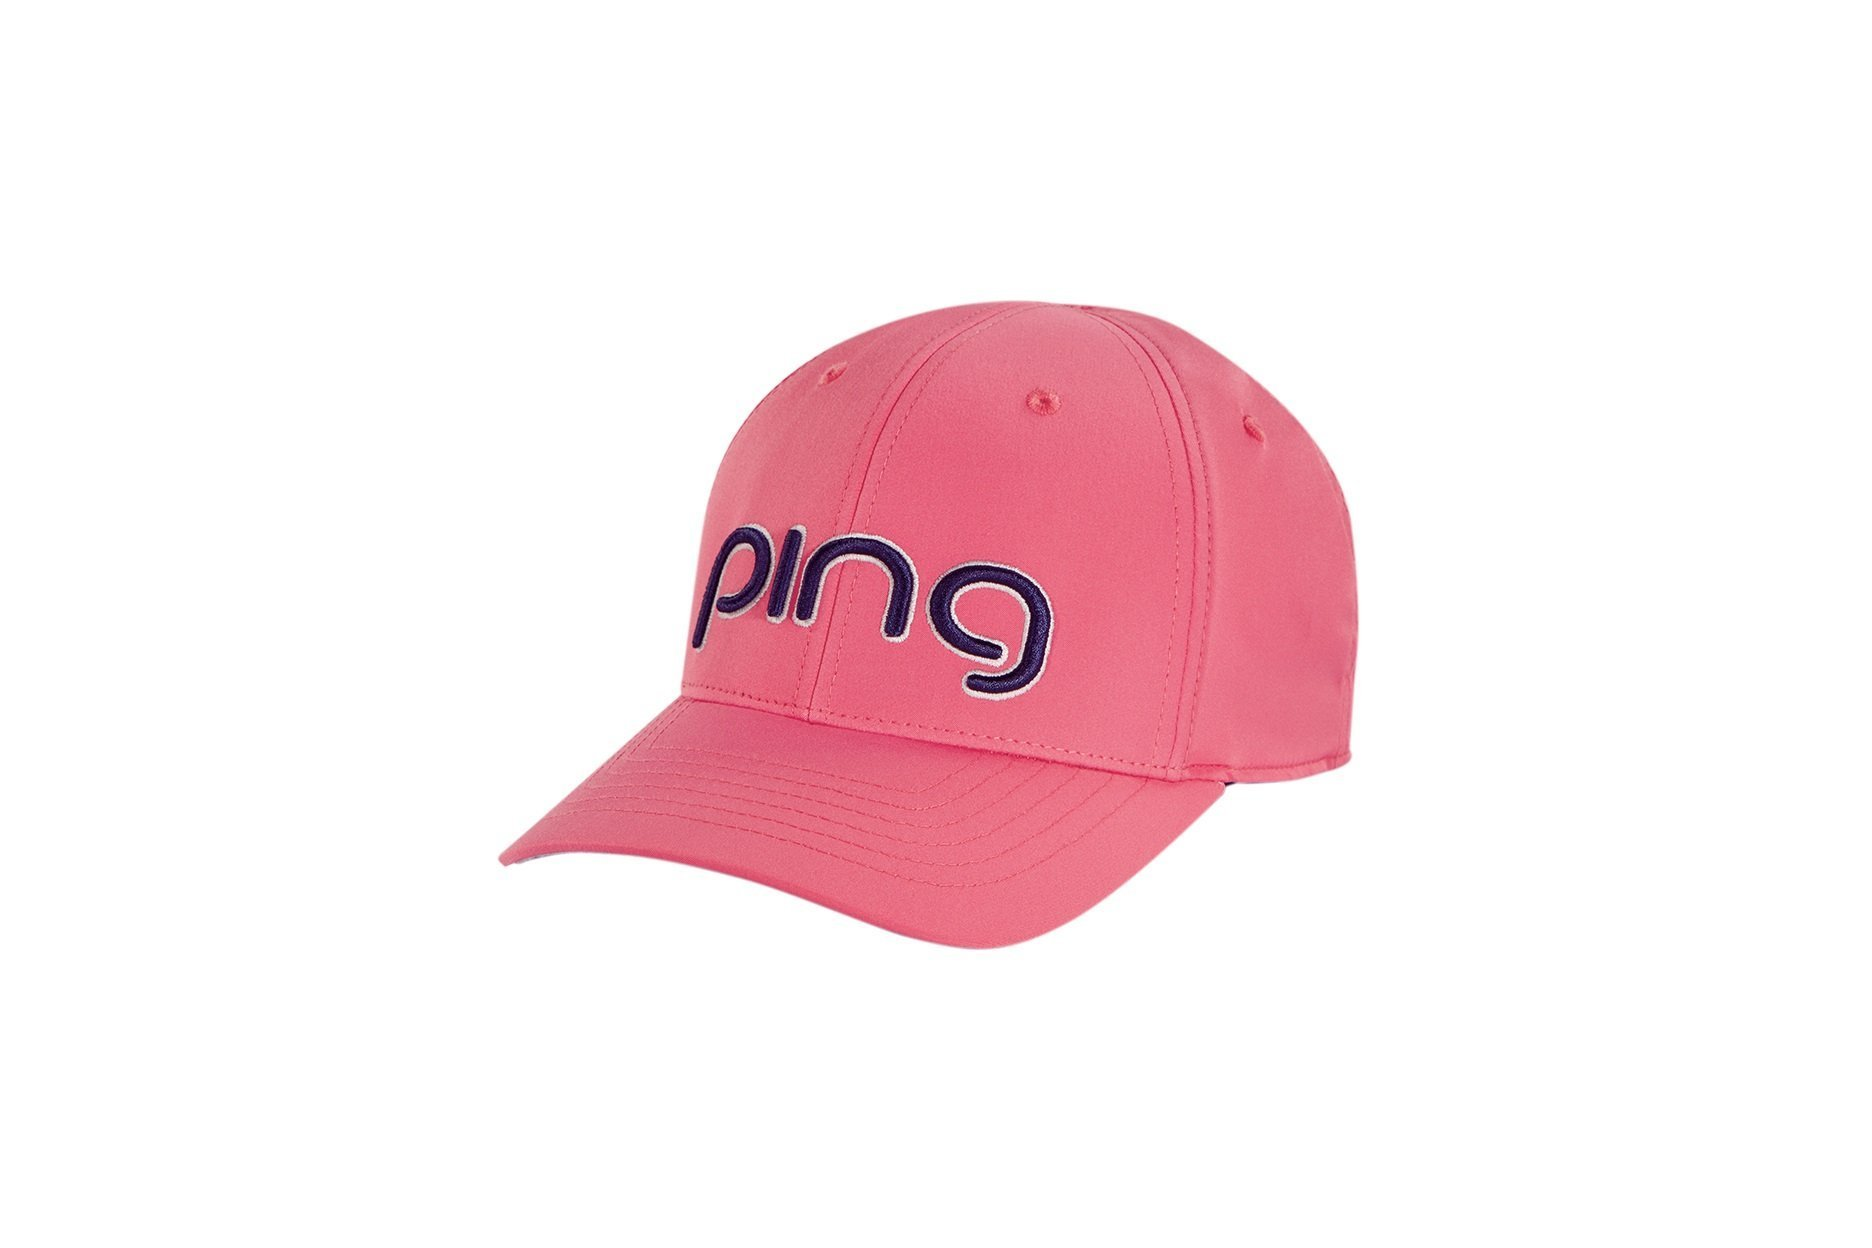 Ping 2018 Ladies Performance Adjustable Hat/Cap- Peony/Navy